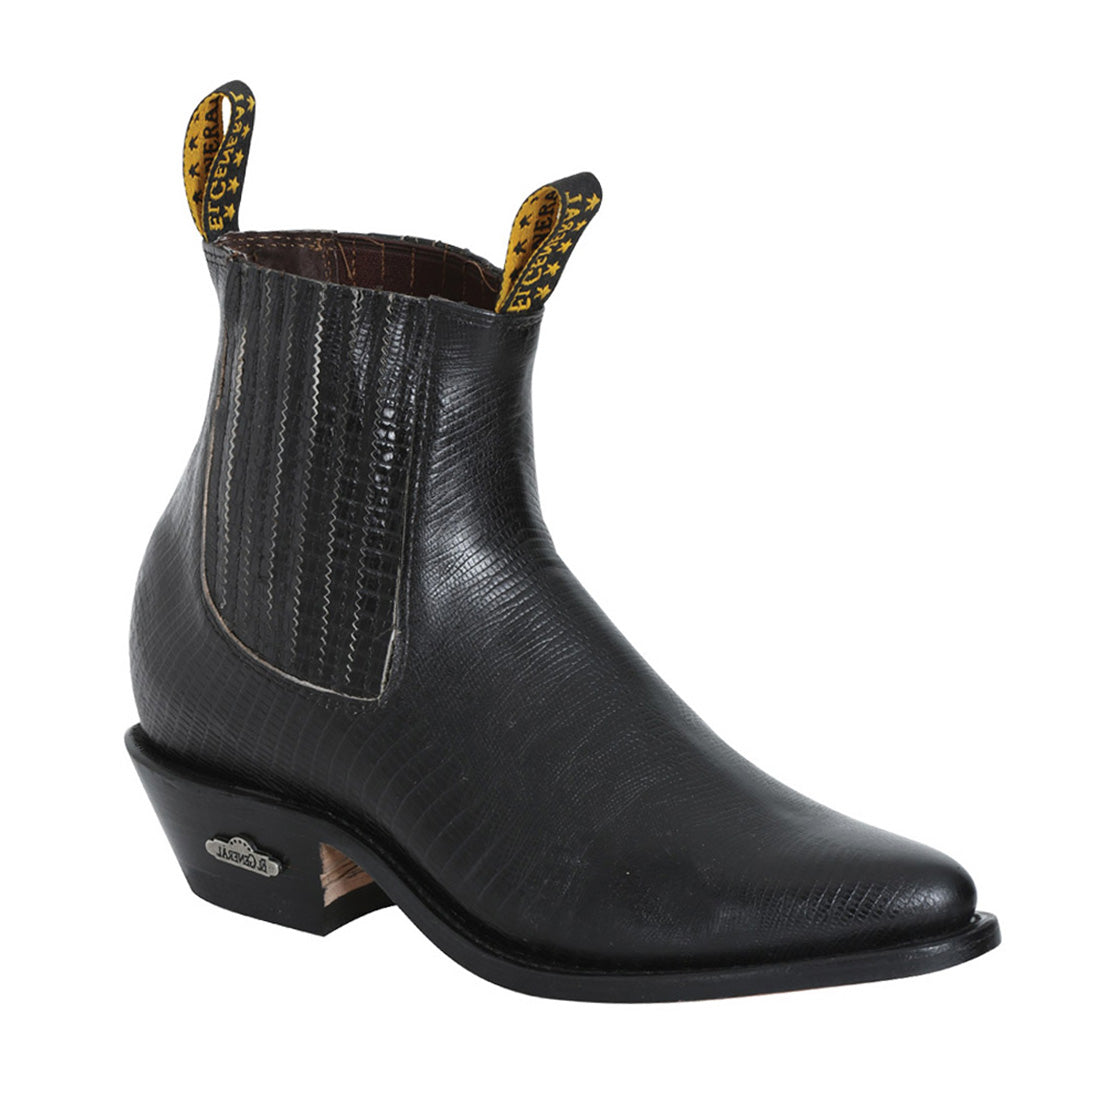 Lizard Print Pointed Toe Ankle Boots